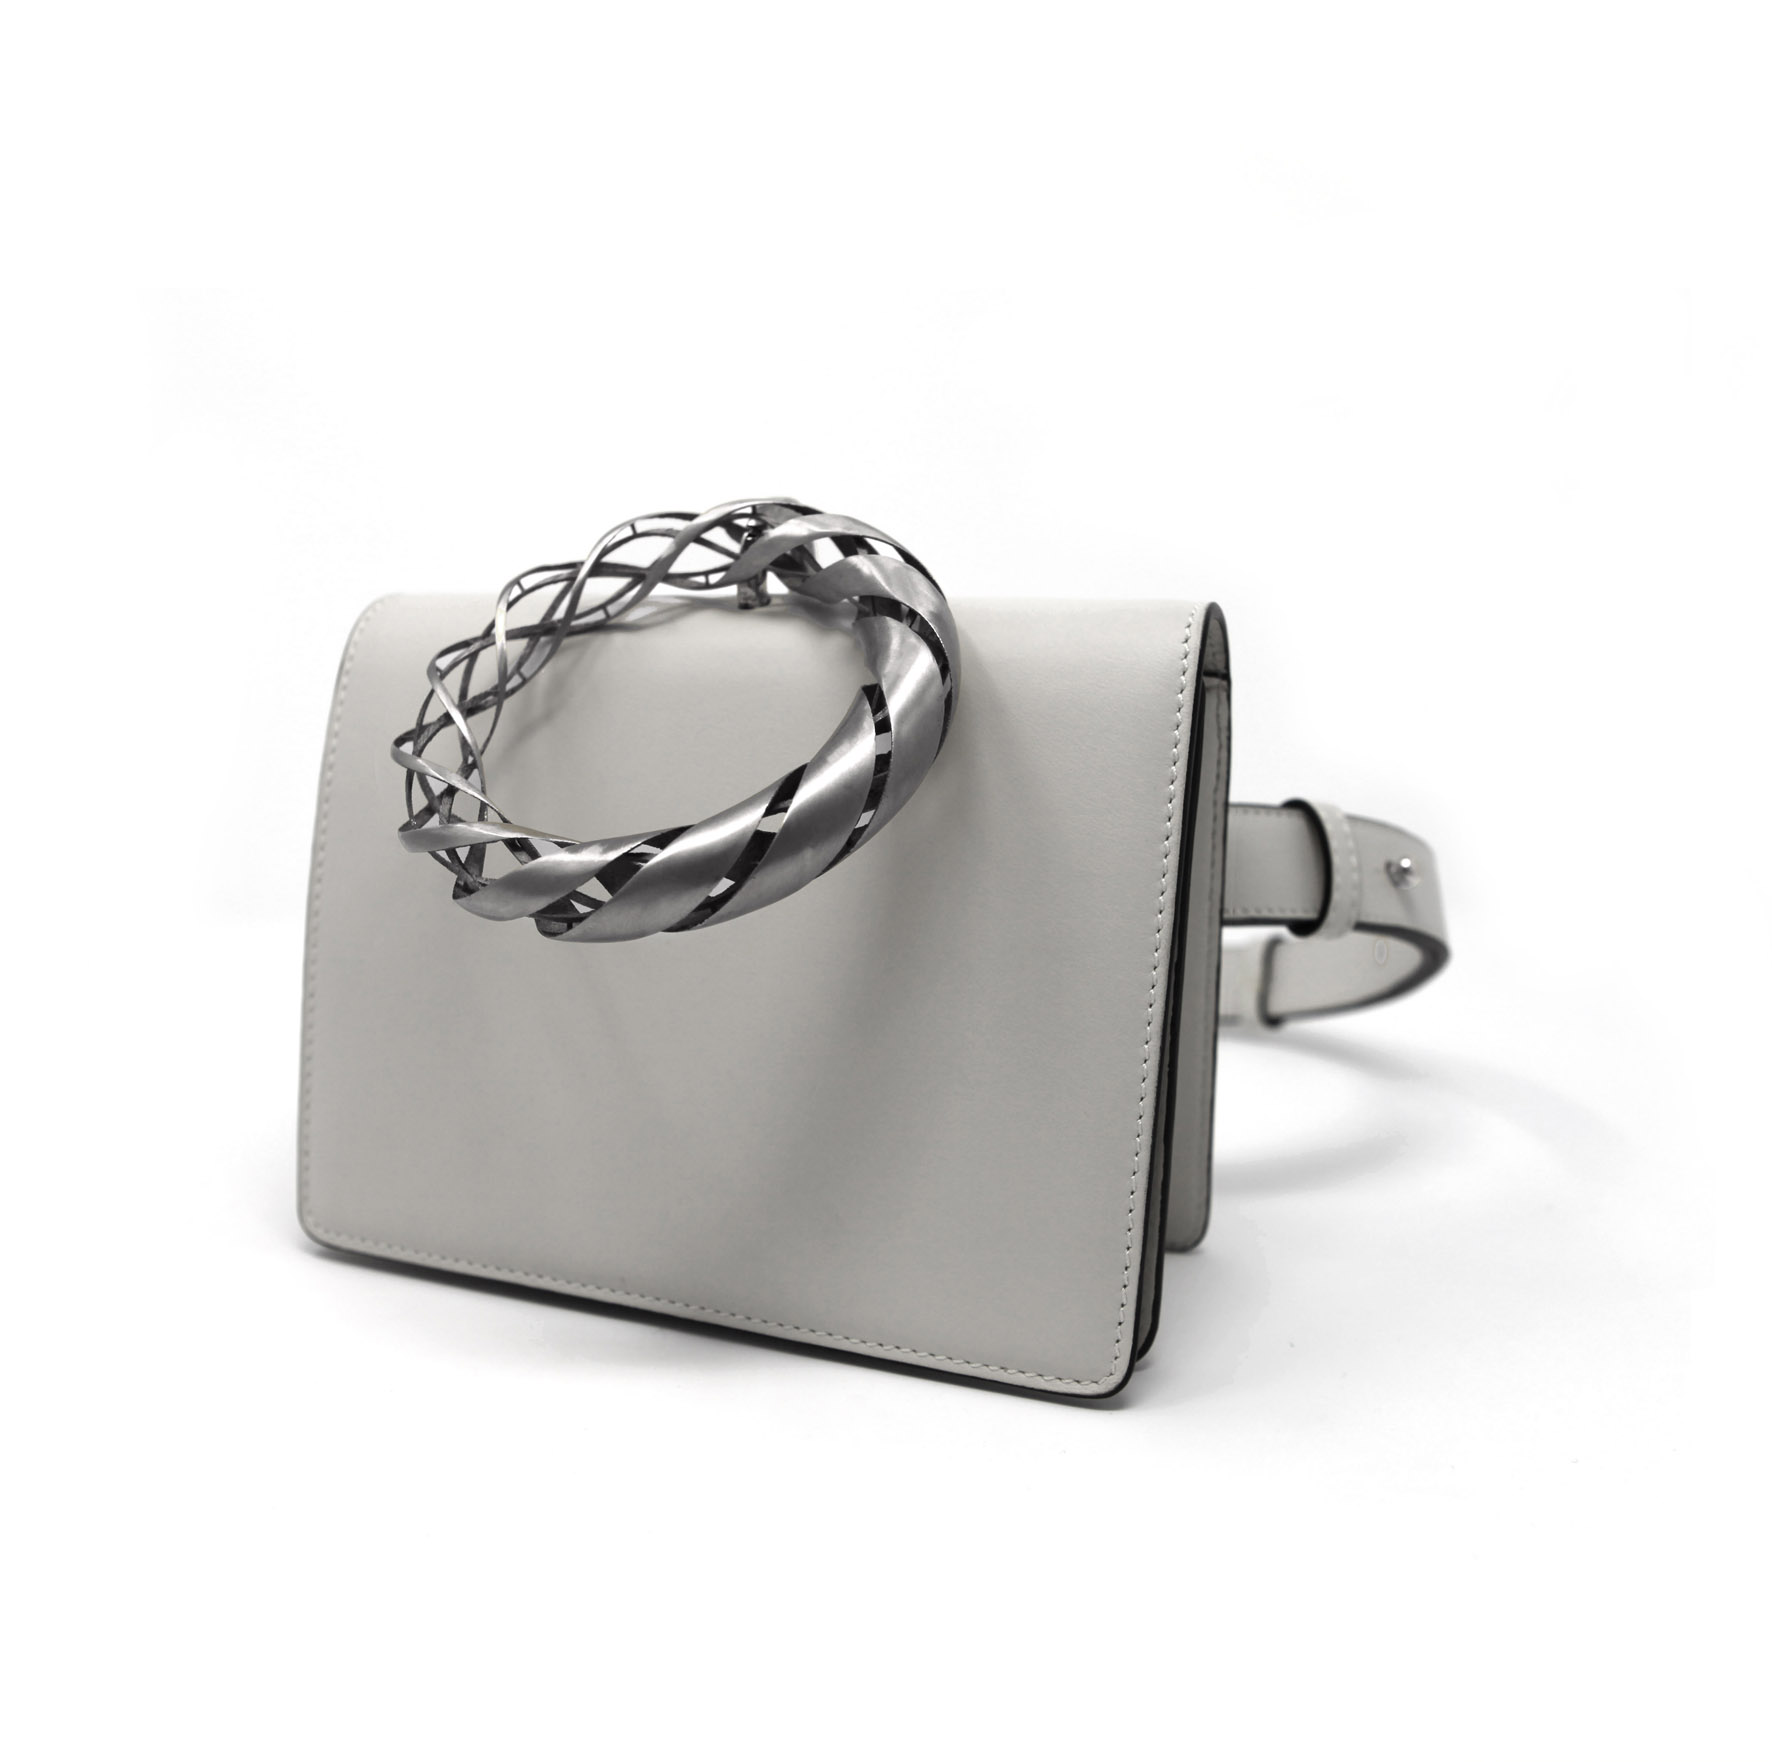 Belt Bags 22 - Maissa by Giulia Ber Tacchini Italian Custom Jewels and Luxury